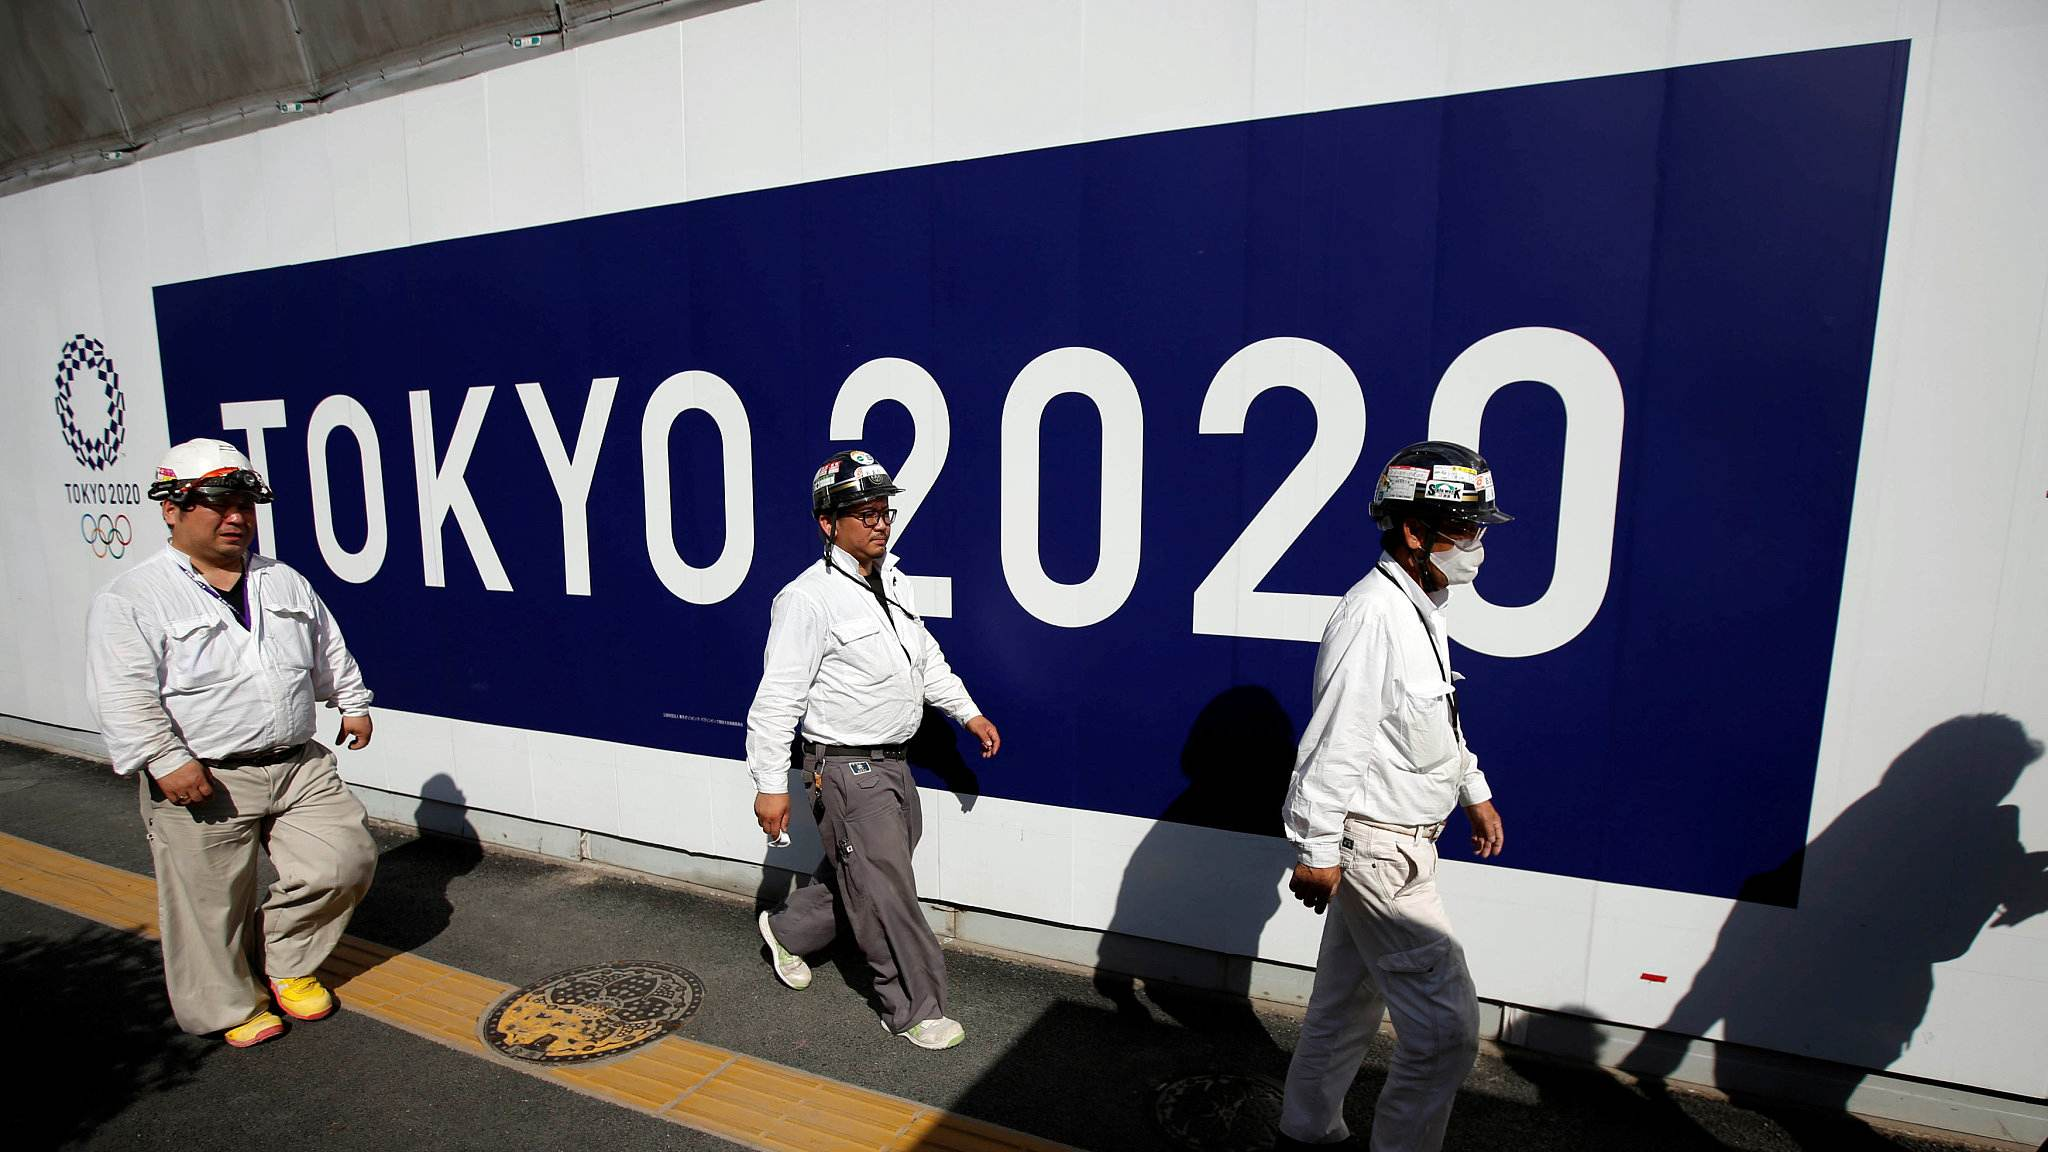 70% of Japanese do not expect Tokyo Olympics to go ahead as planned: Poll